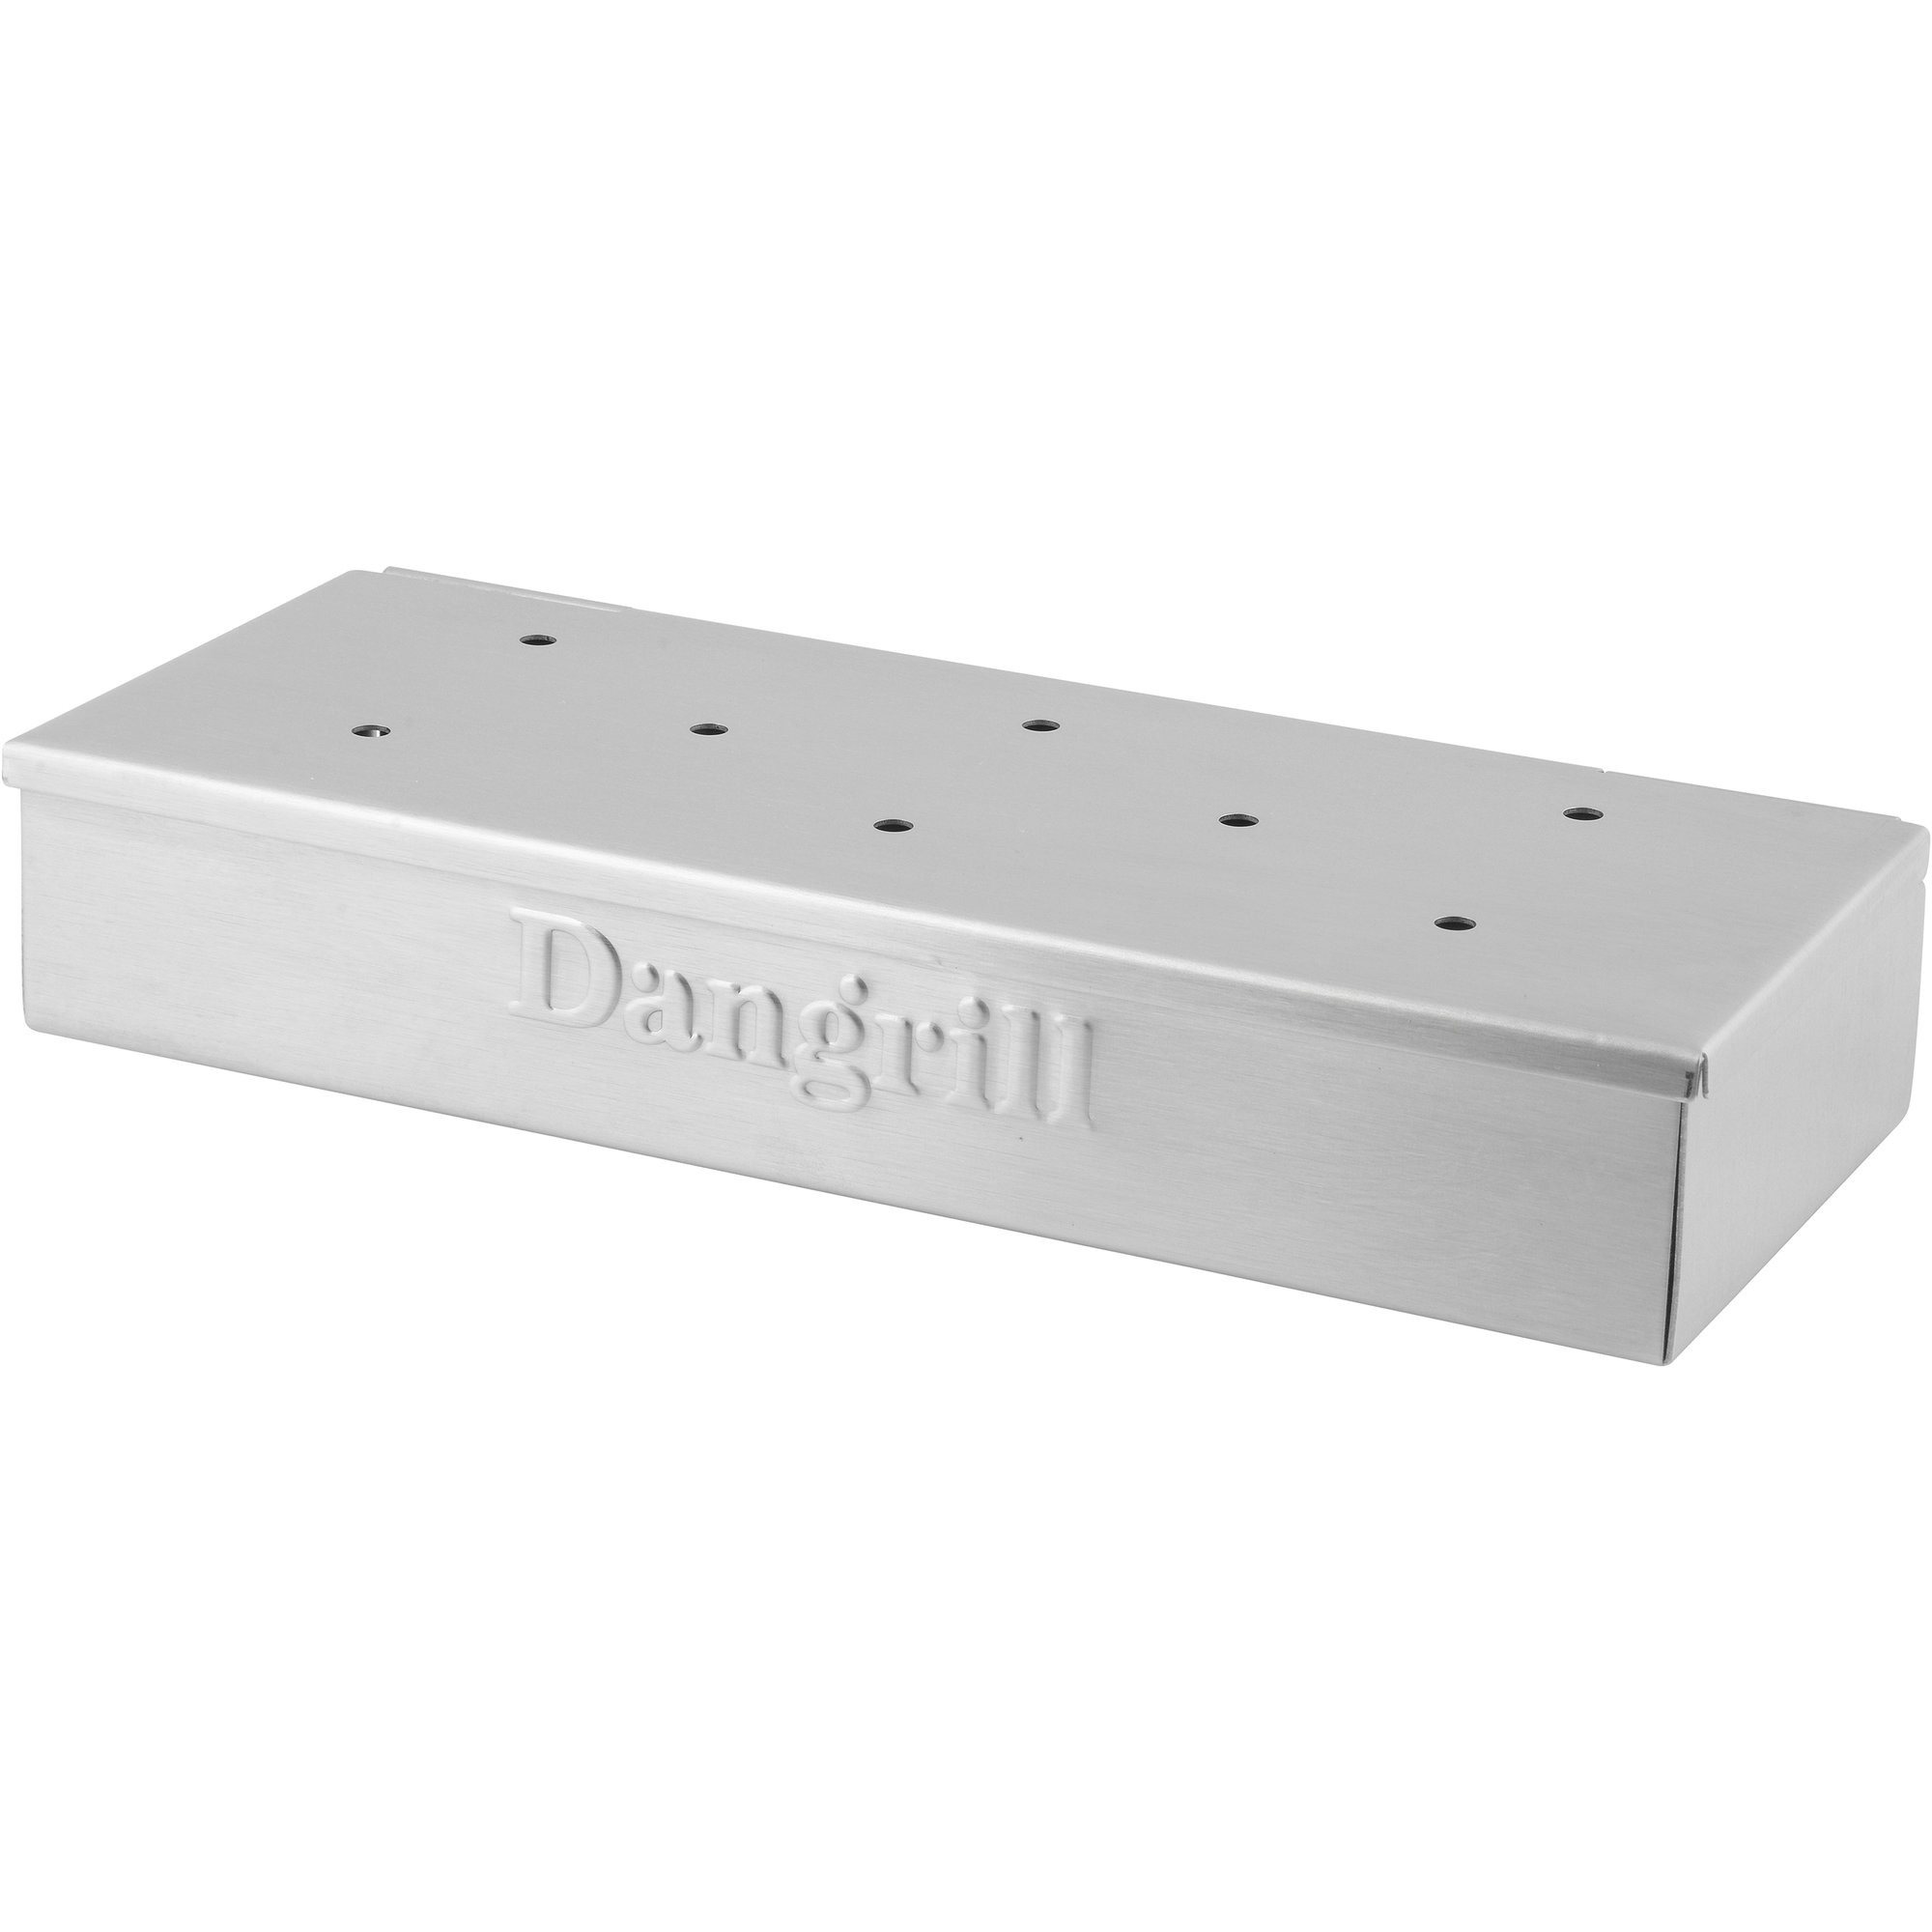 Dangrill Rökbox